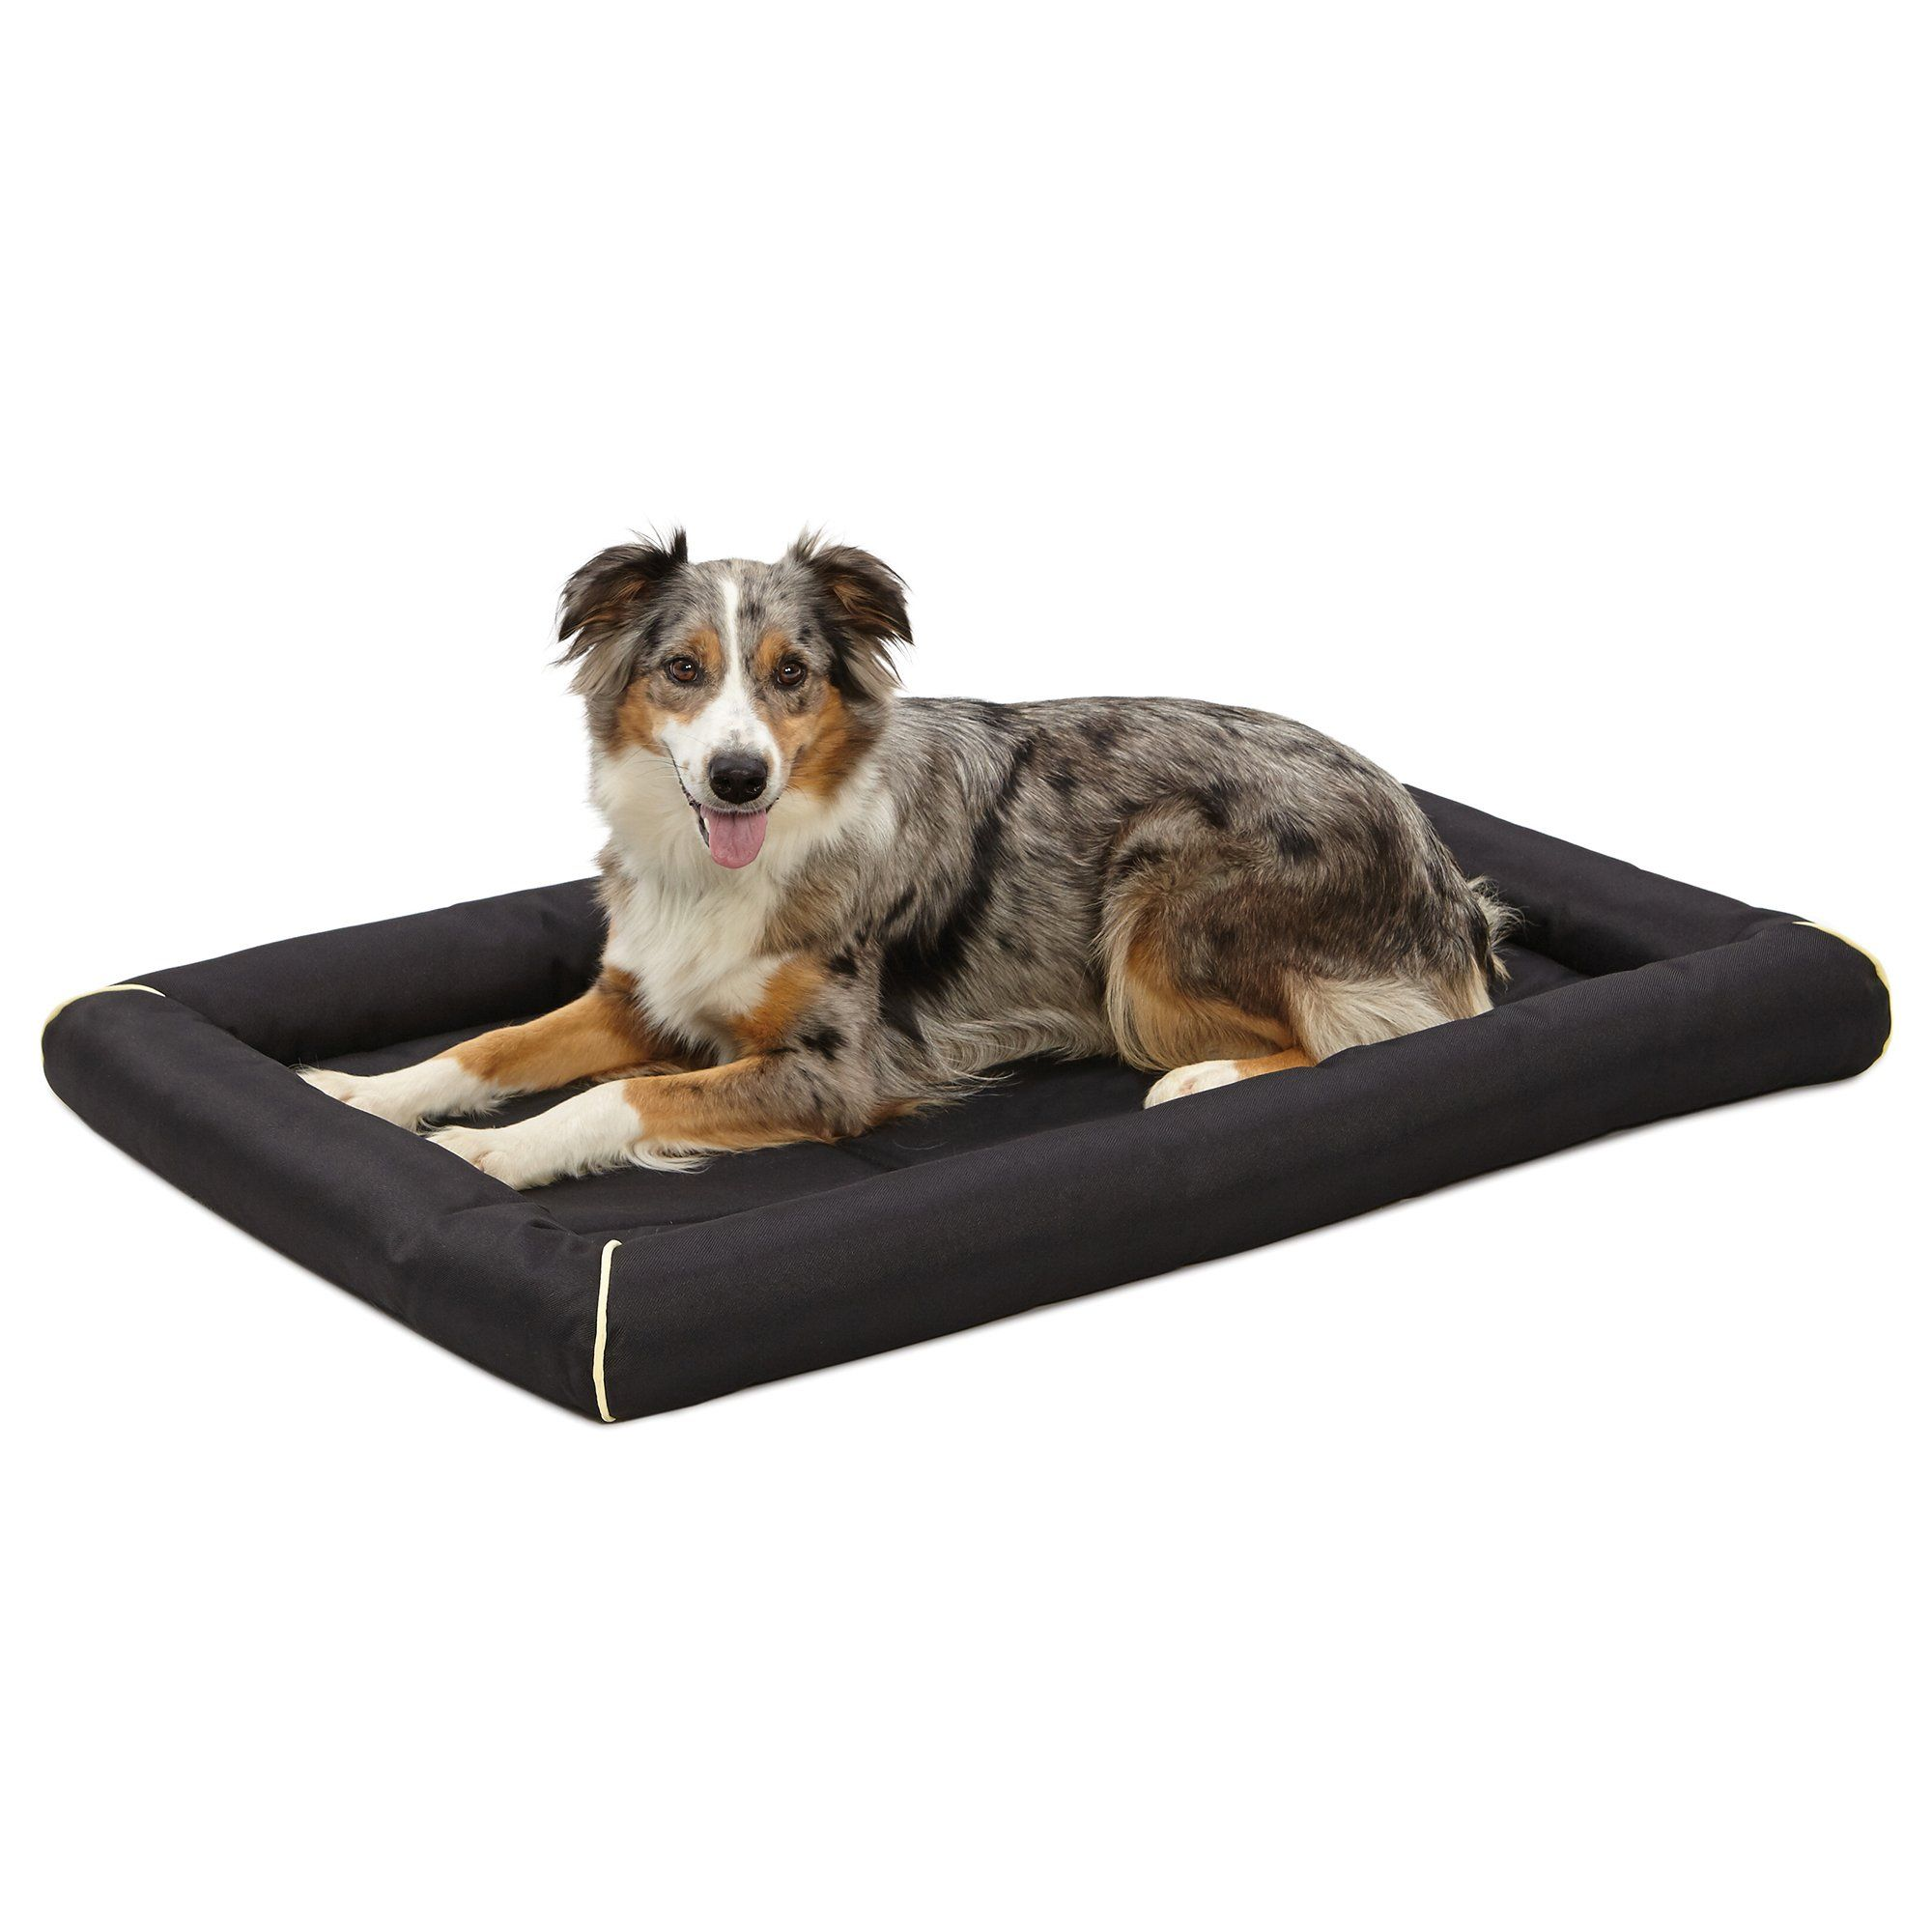 10 Best Canopy Dog Beds for Outdoor Use